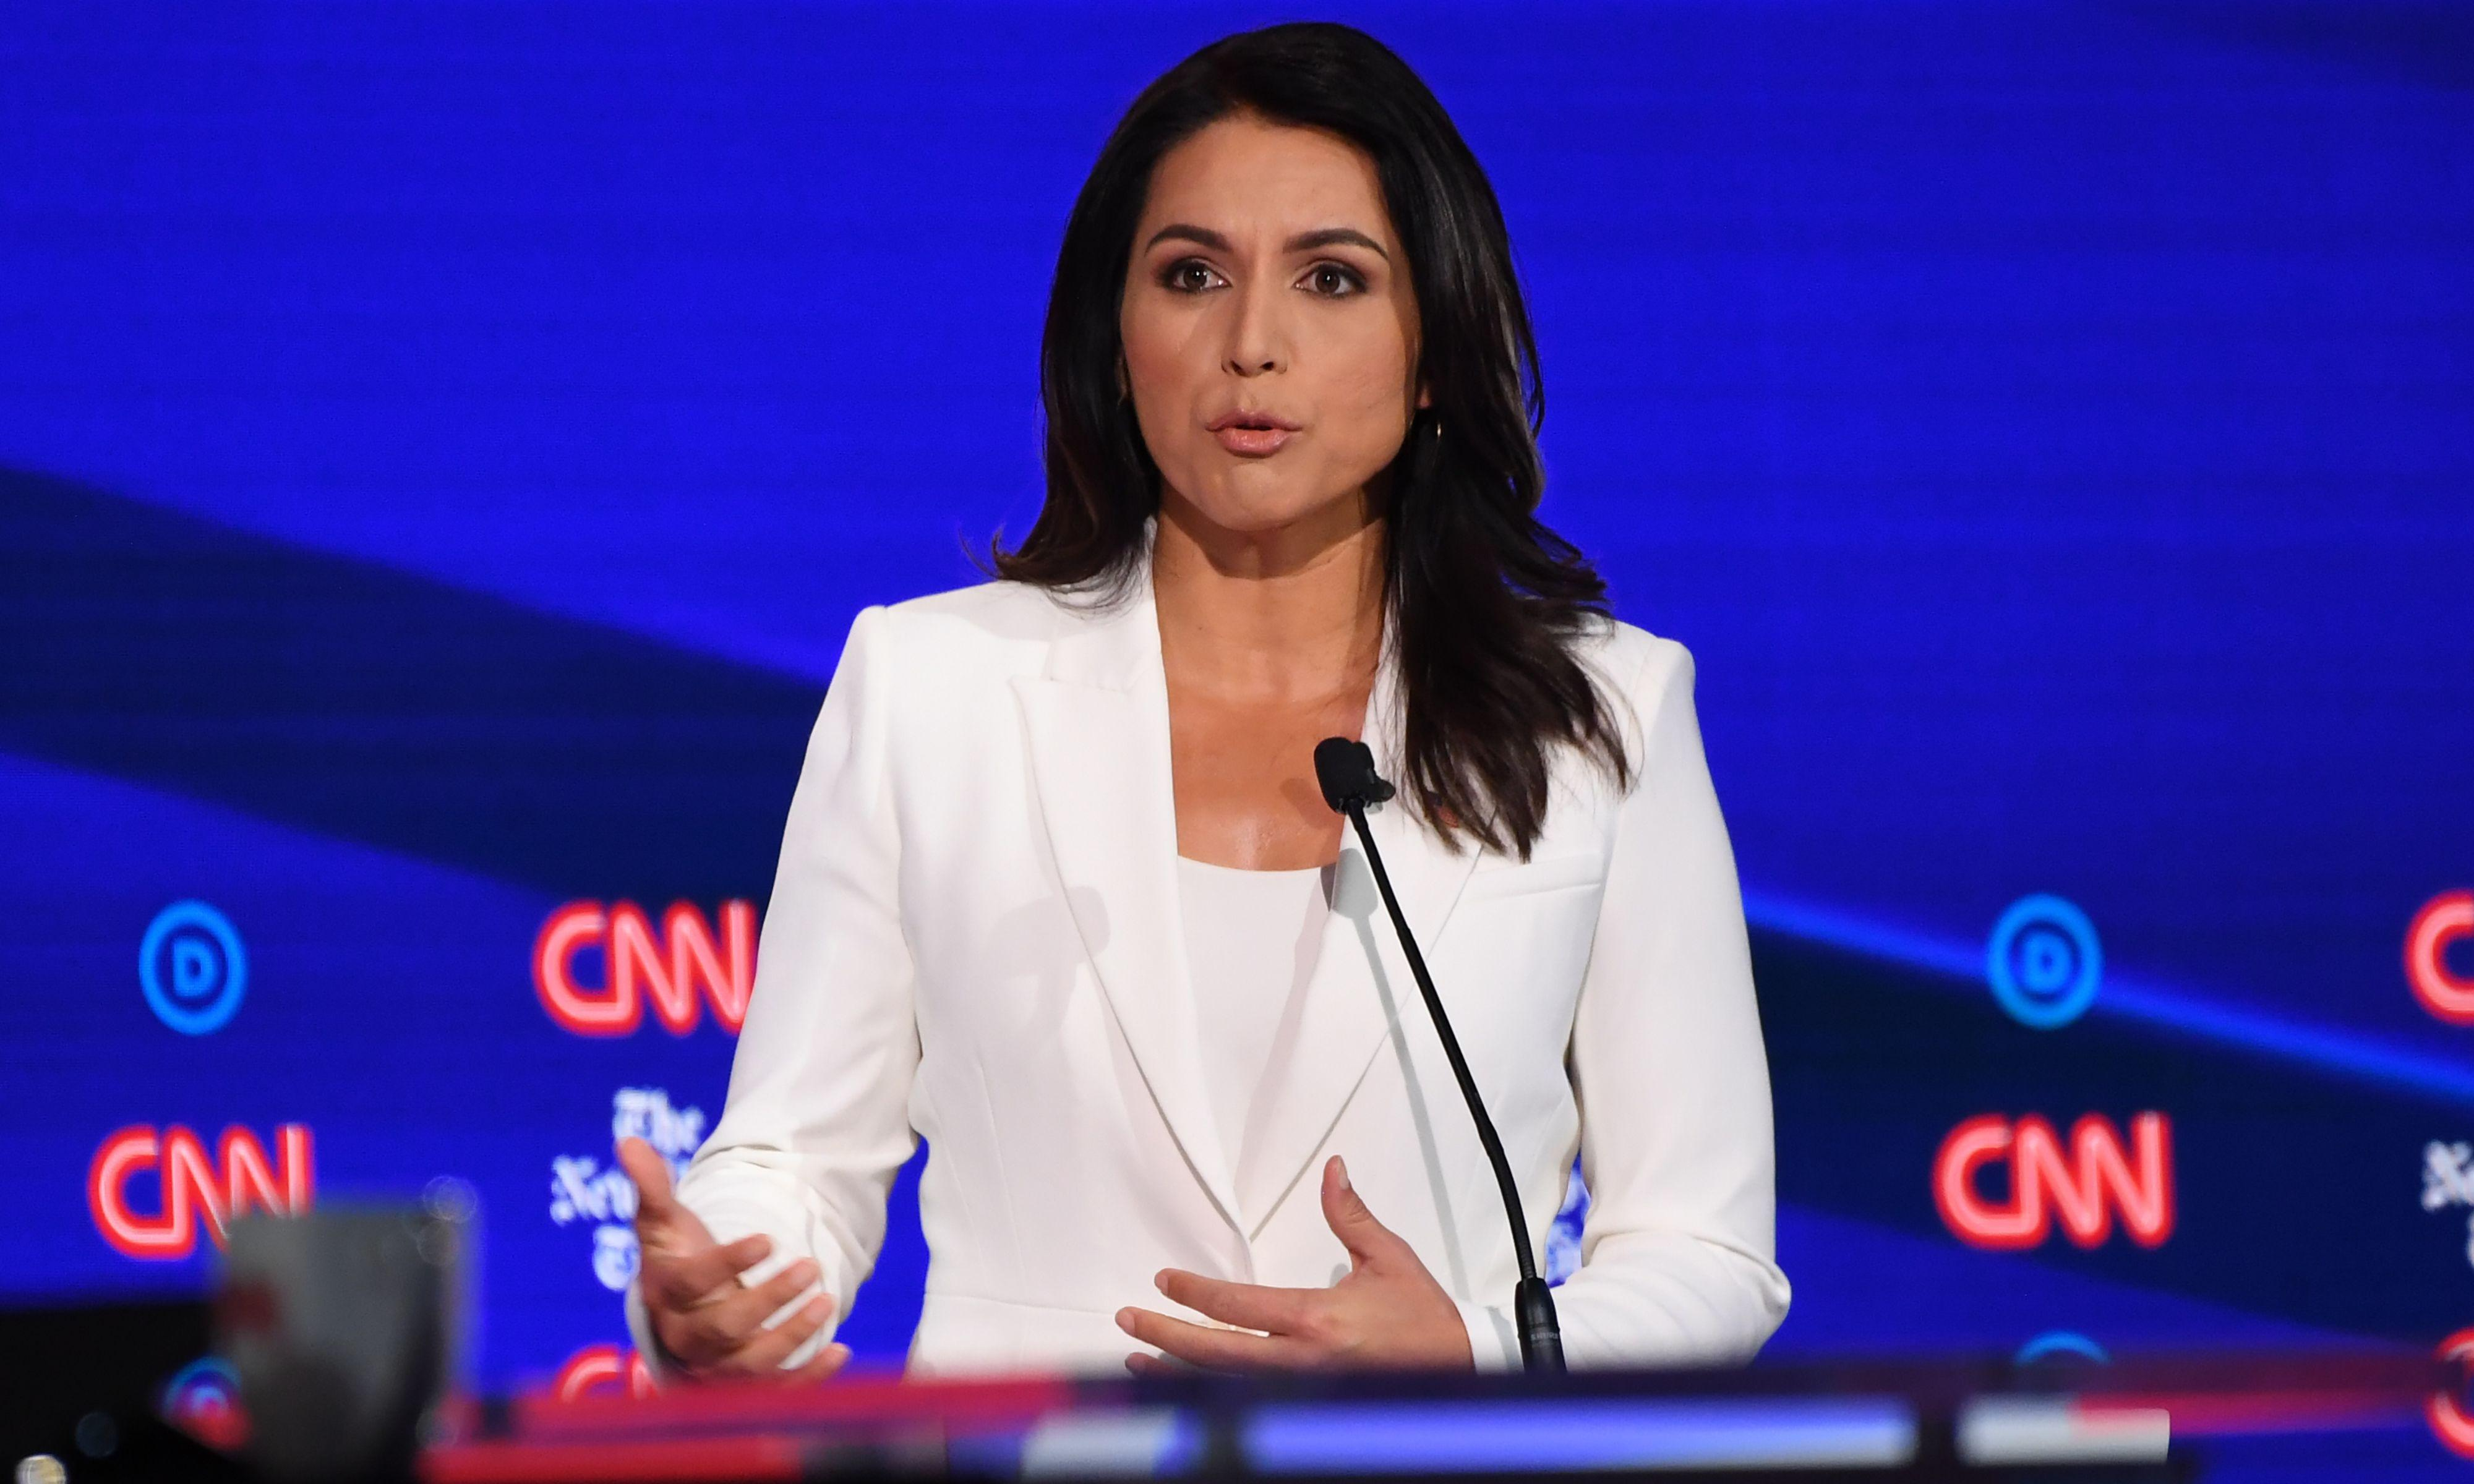 Gabbard: Clinton 'personifies rot that has sickened Democratic party'